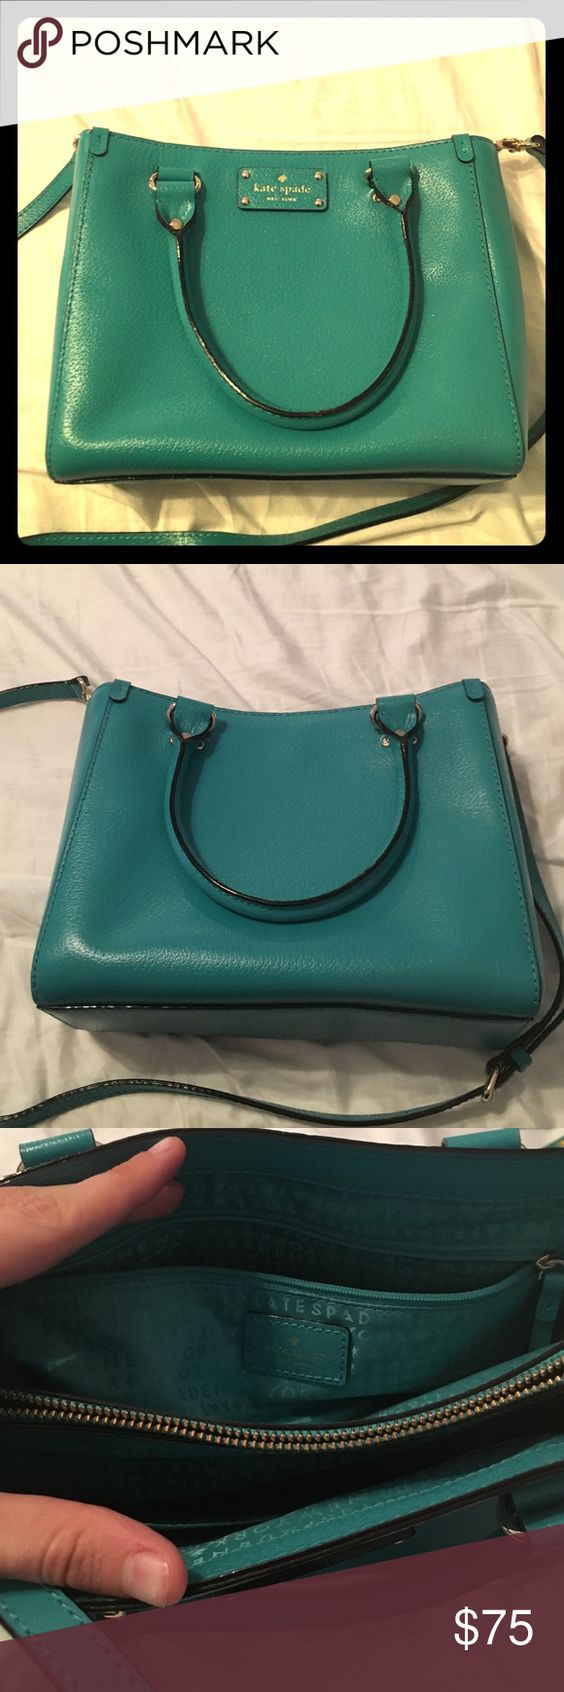 Kate Spade Handbag Turquoise Kate Spade Handbag. Authentic. Perfect condition. I bought it and have never used it. Absolutely no blemishes, rips, tears, or stains. It's a beautiful turquoise with gold hardware, and it doesn't deserve to just sit in the back of my closet! kate spade Bags Shoulder Bags